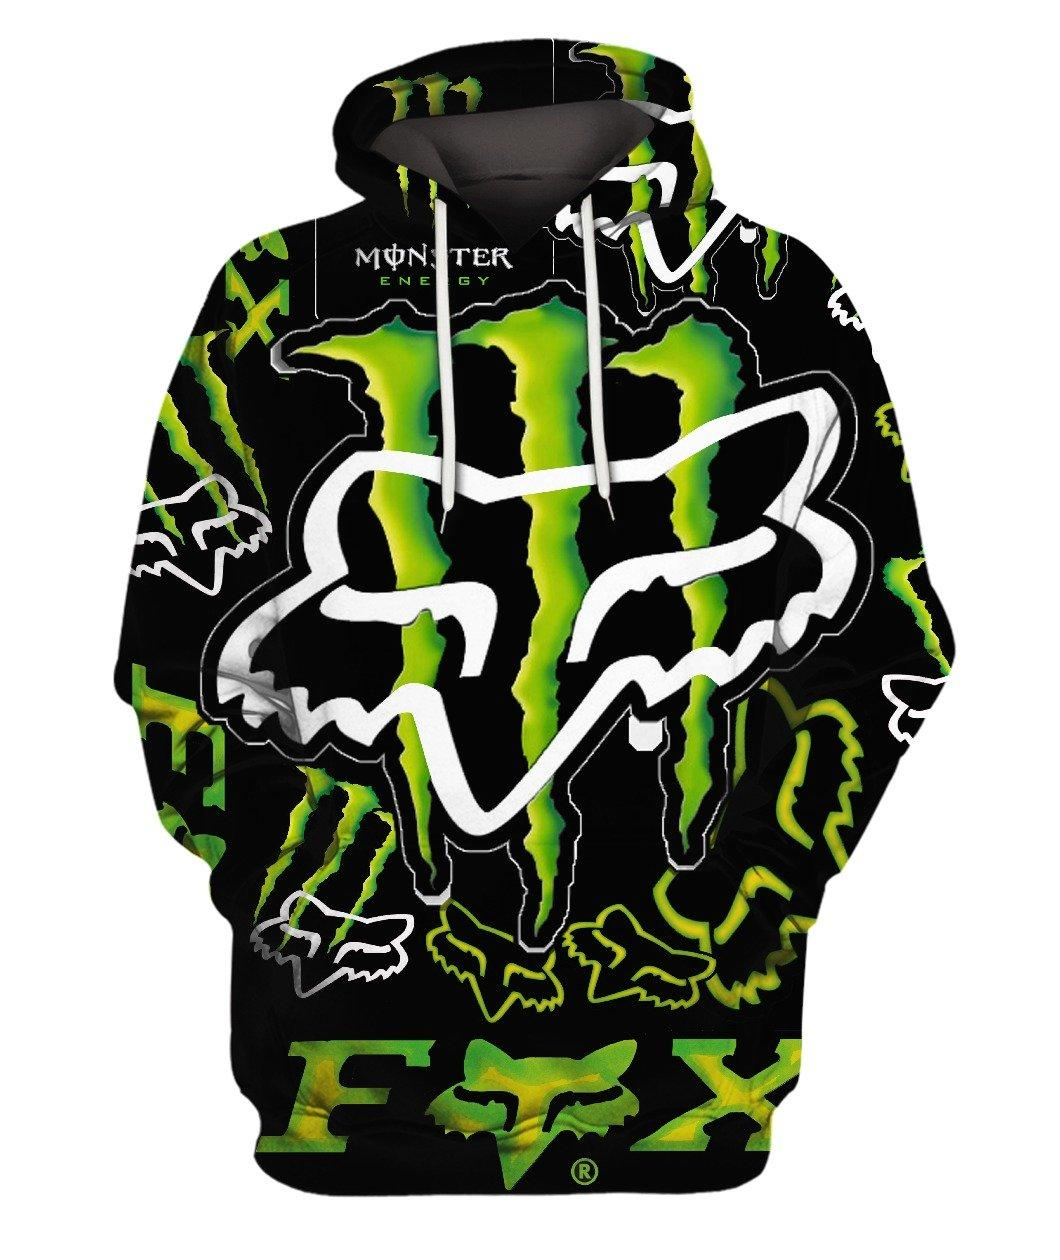 Fox Monster Energy Green 3d Full Print 3d Graphic Printed Tshirt Hoodie Up To 5xl